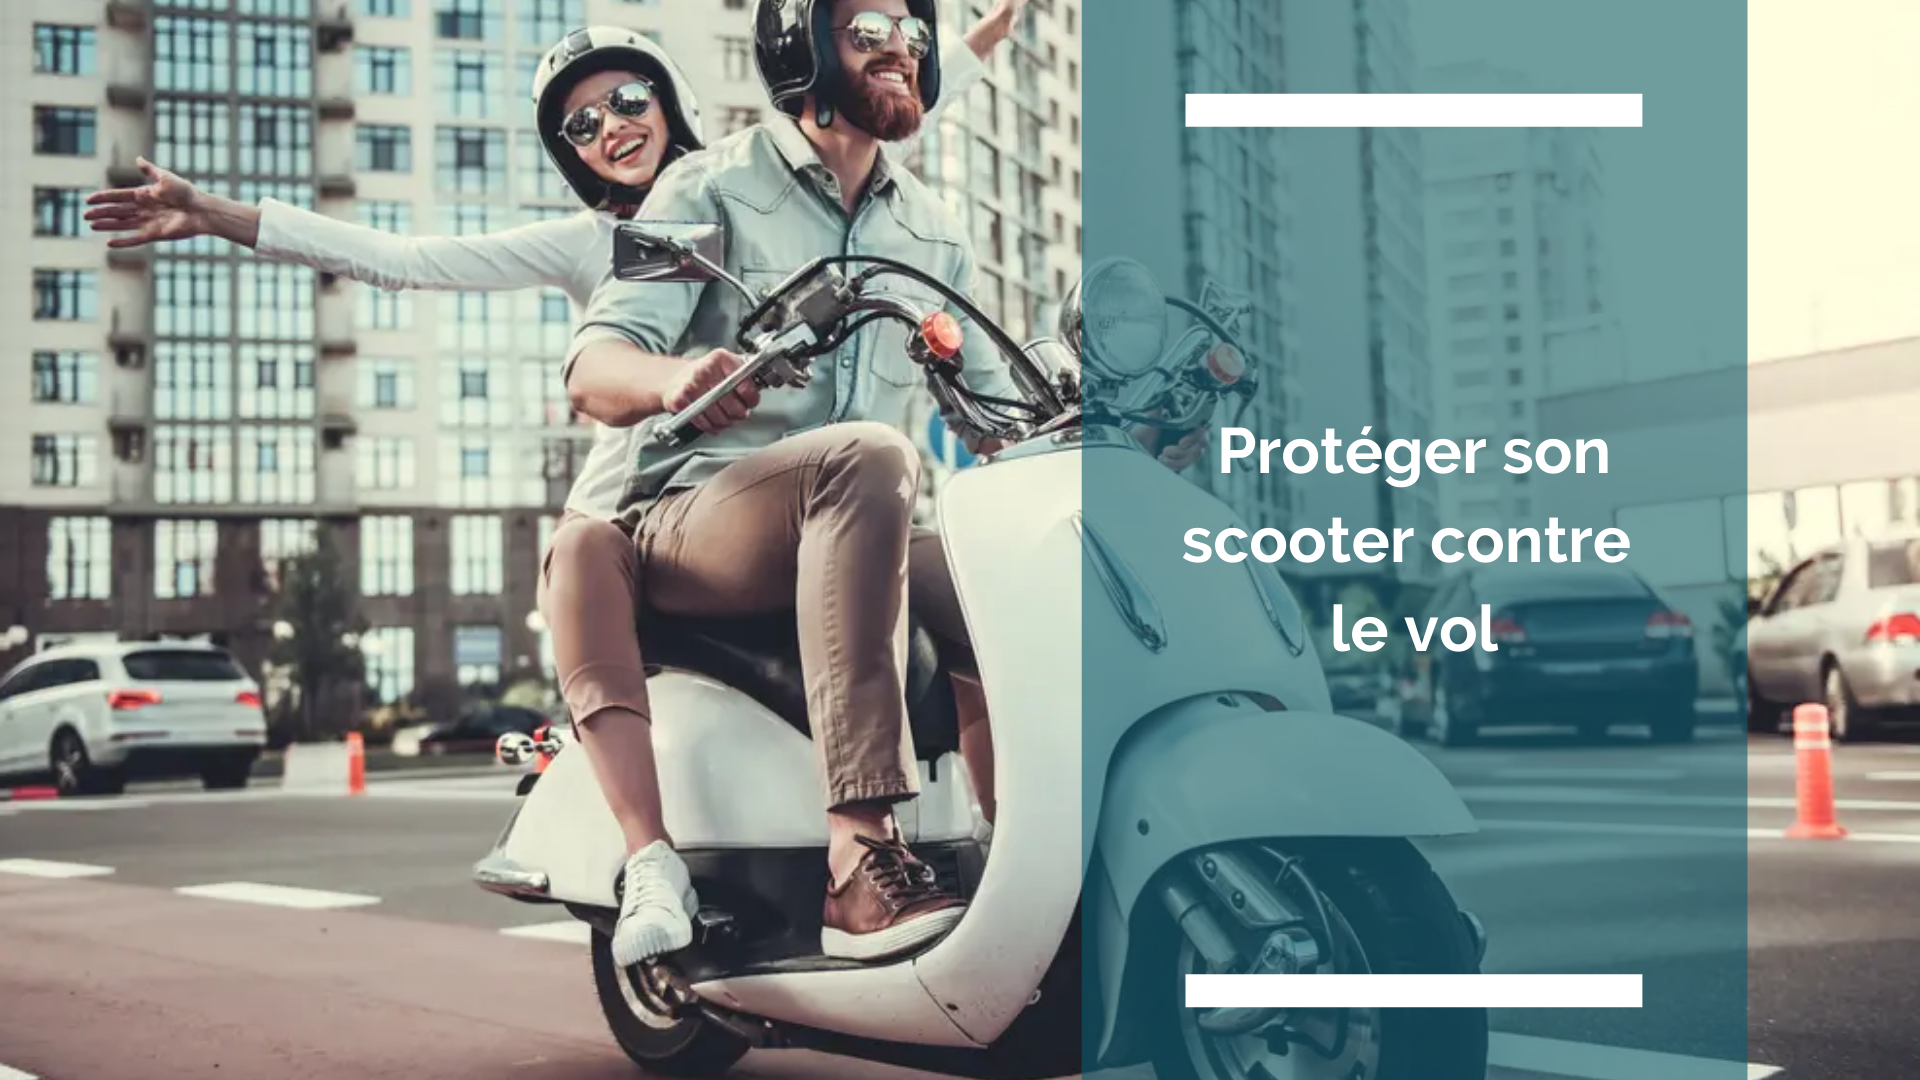 Visuel de l'article : protéger son scooter contre le vol